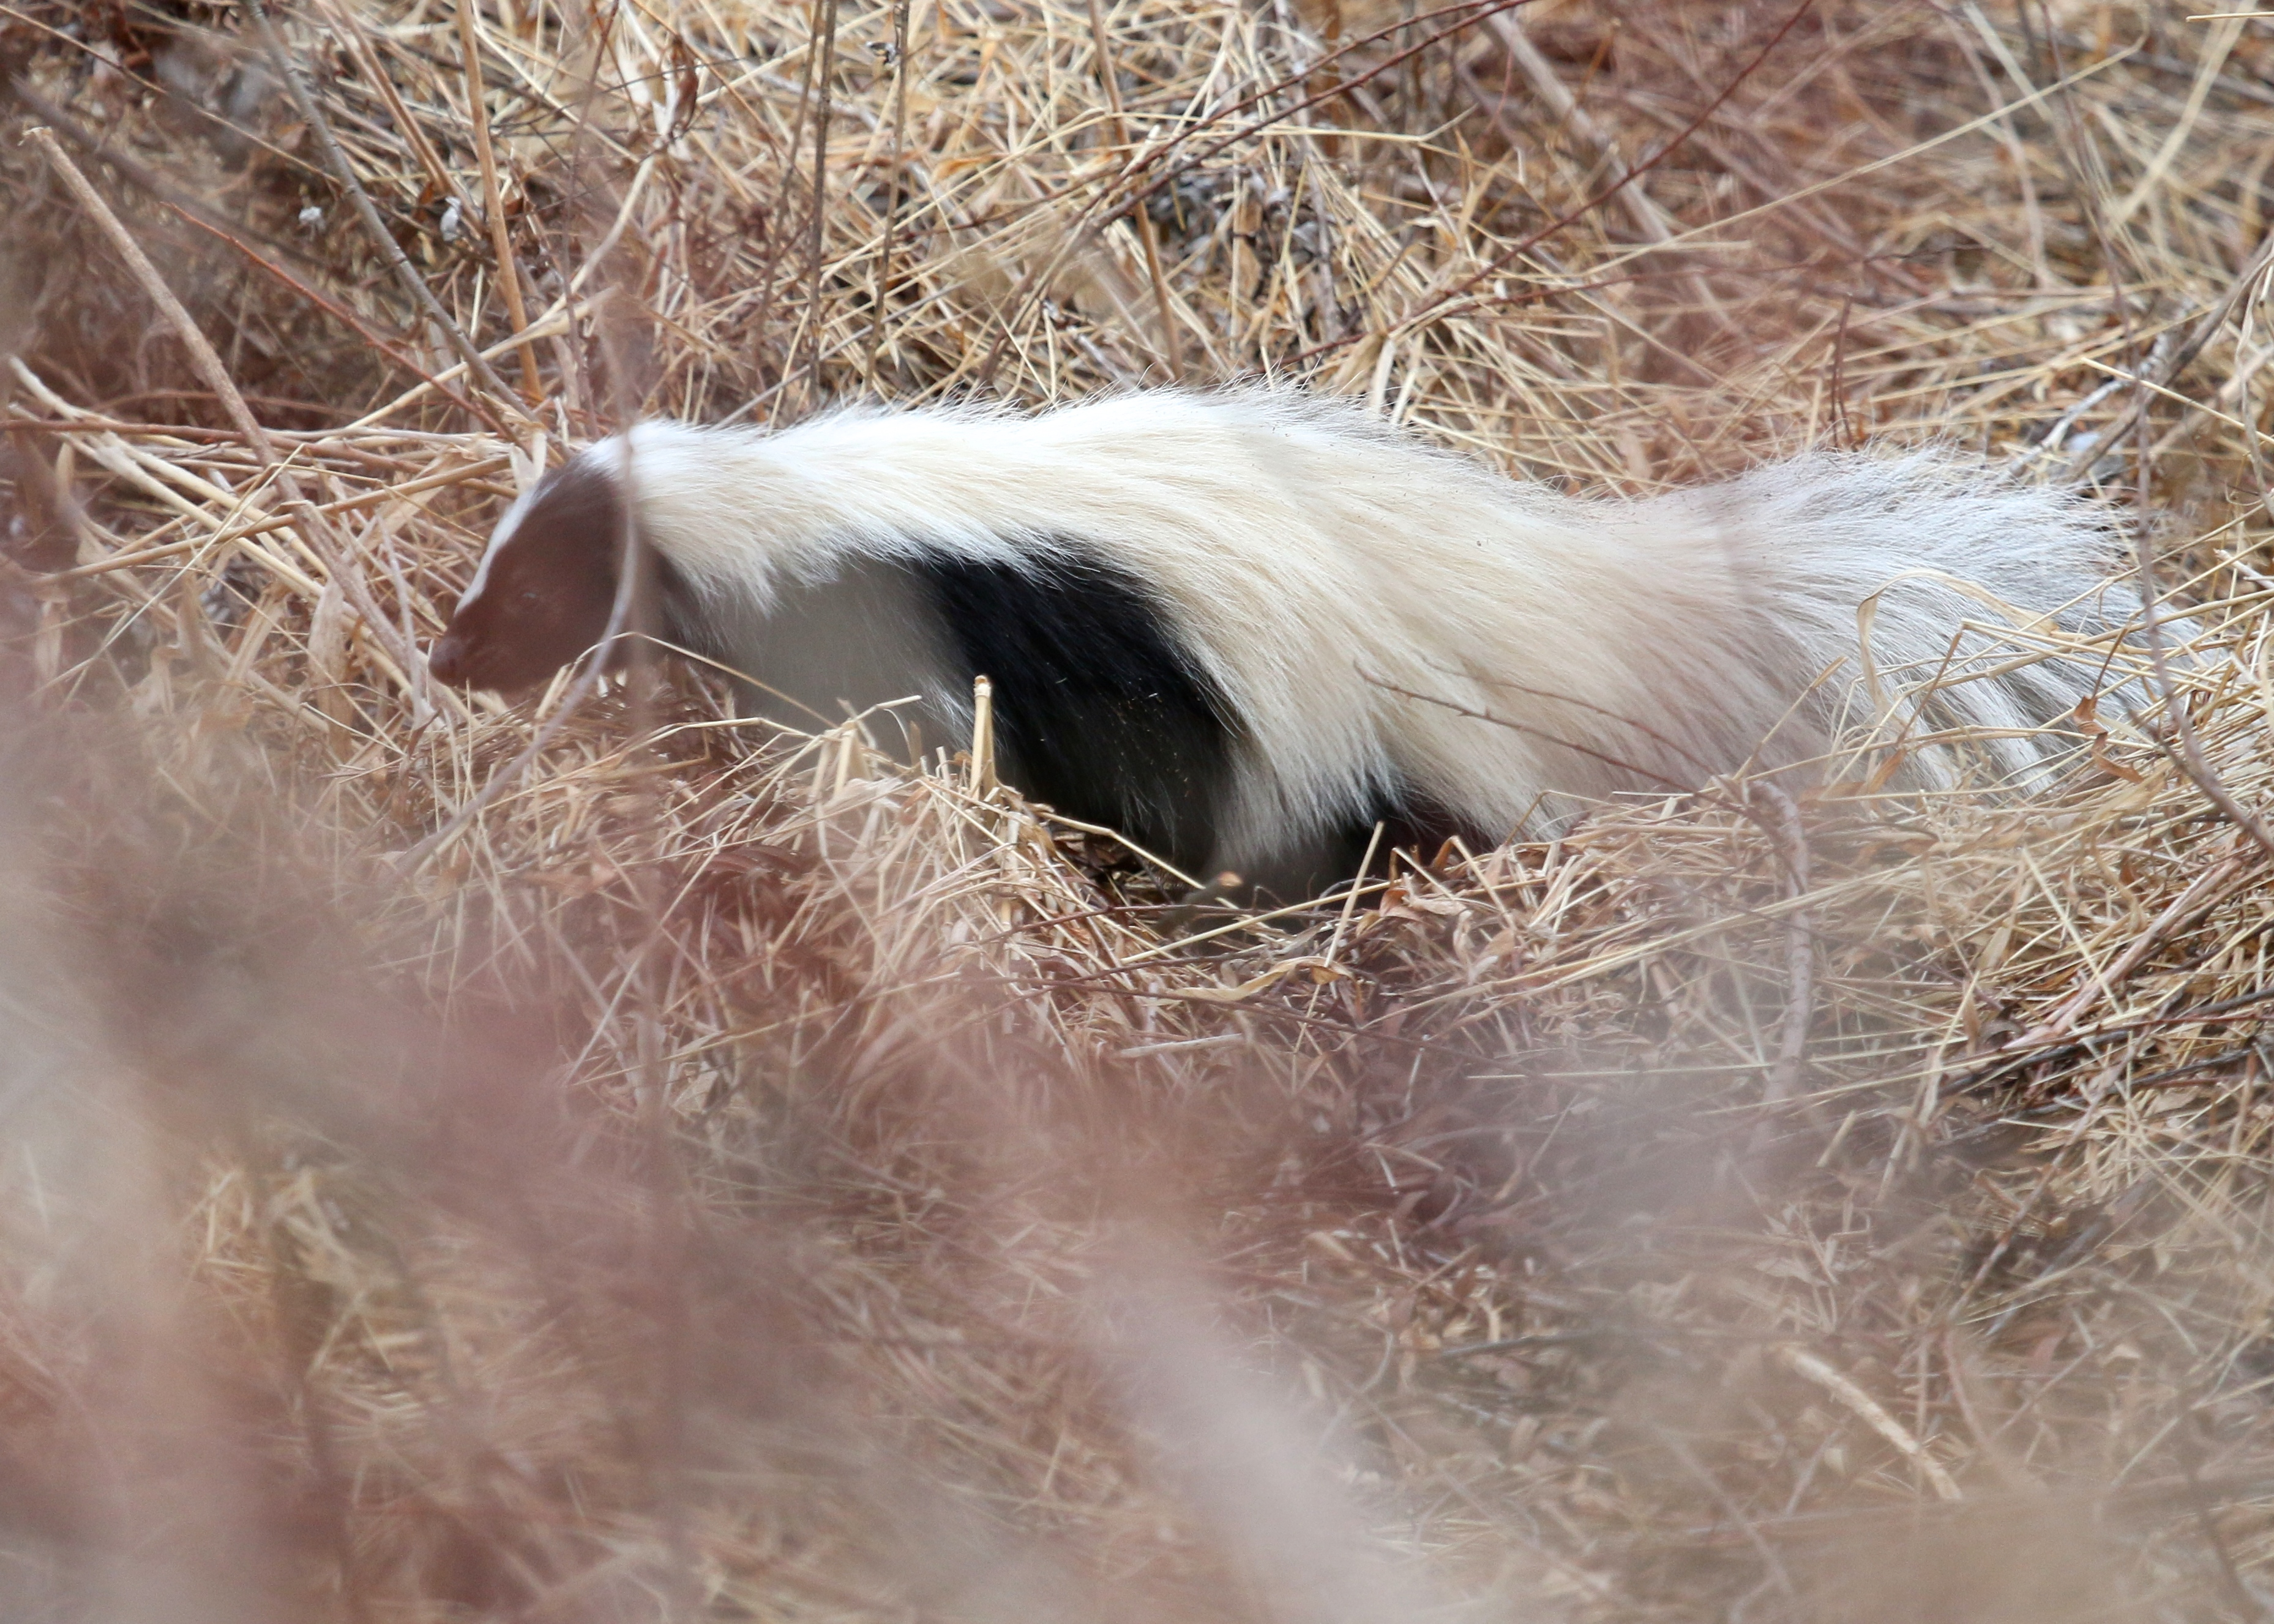 Thanks to the gentleman on the trail that gave me the heads-up about this skunk. Wallkill River NWR, 3/27/14.